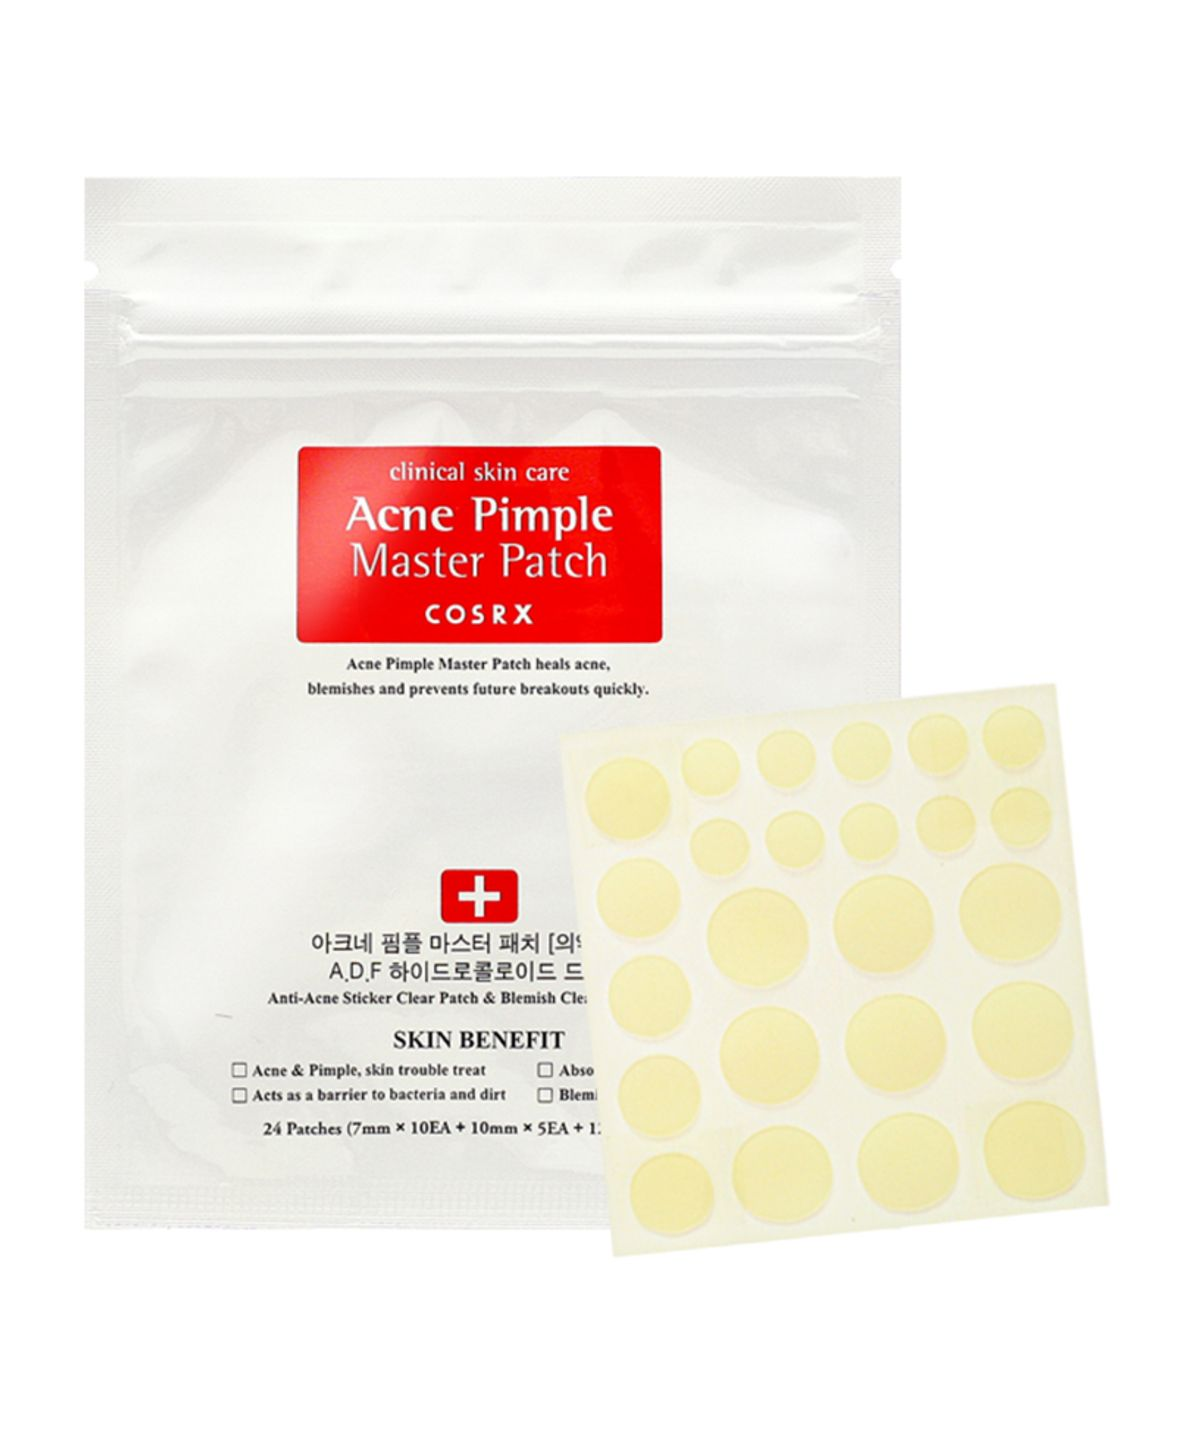 under sgd 5 beauty CosRx Acne Pimple Master Patch